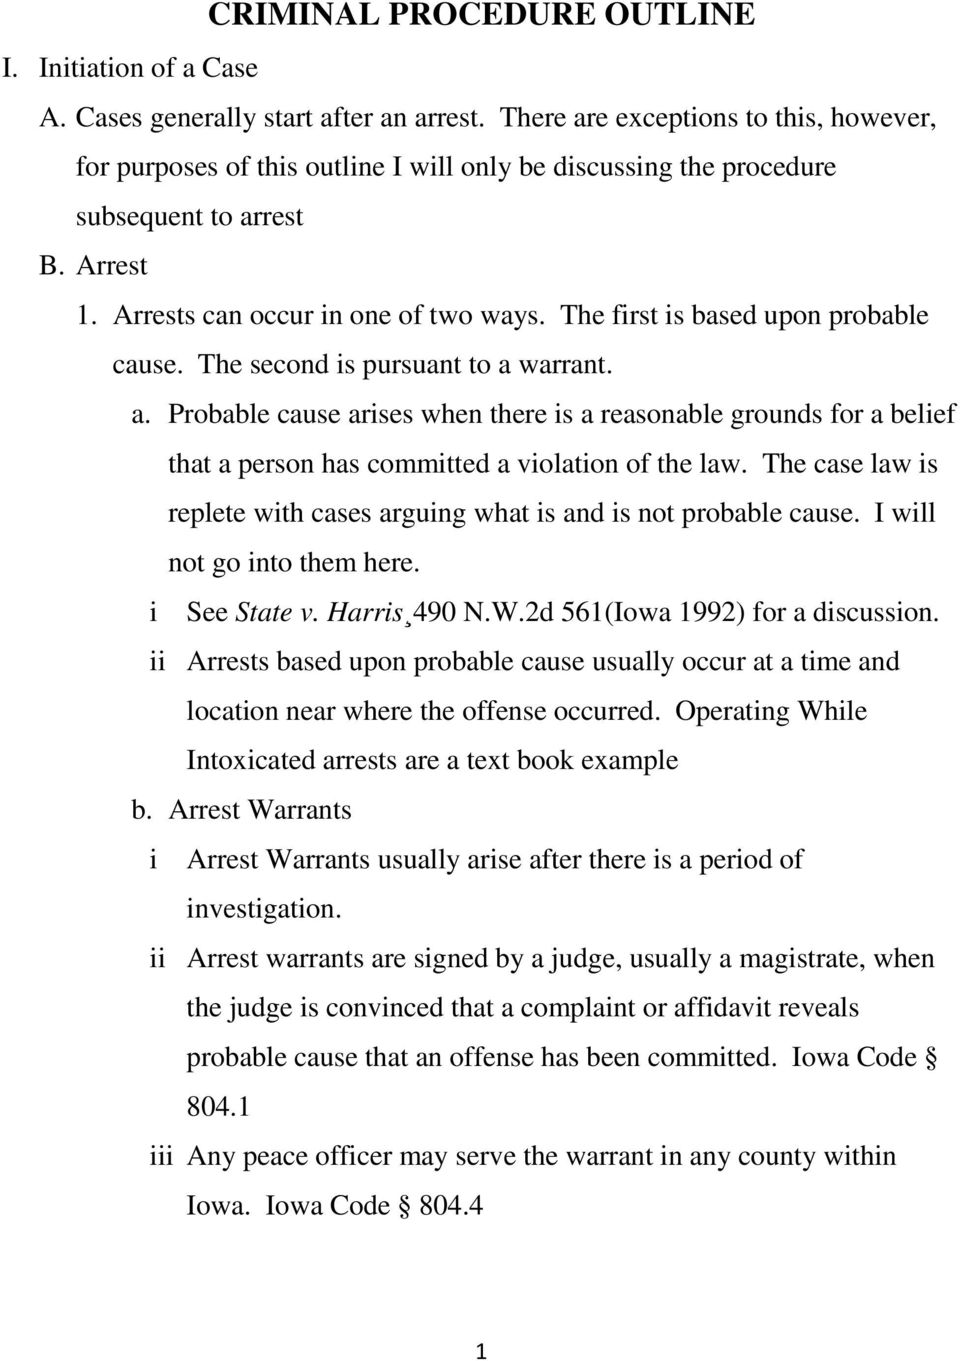 The first is based upon probable cause. The second is pursuant to a warrant. a. Probable cause arises when there is a reasonable grounds for a belief that a person has committed a violation of the law.